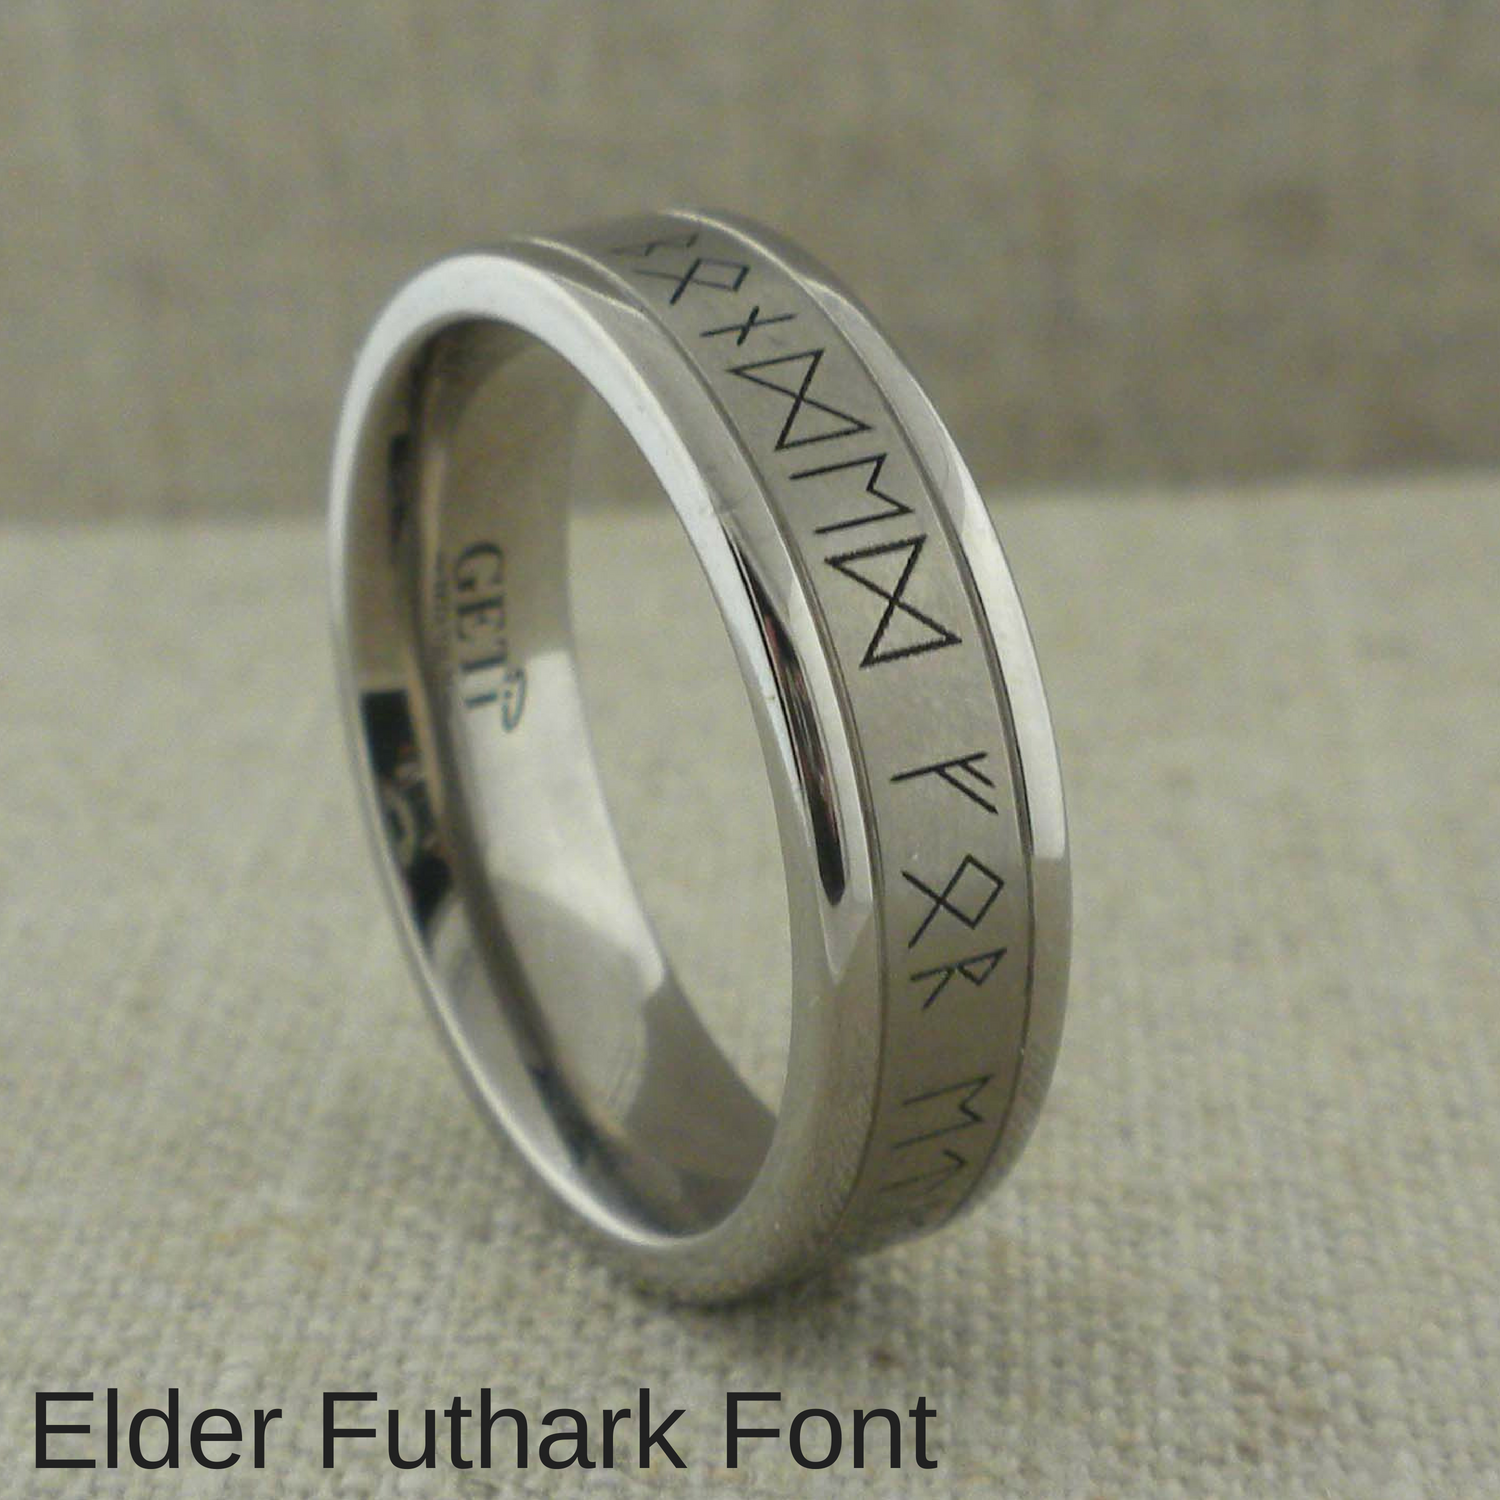 8mm Tungsten Wedding Band Tungsten Promise Ring Viking Futhark Runes With Vegvisir Viking Guidance Compass Symbol Personalized Custom Ring